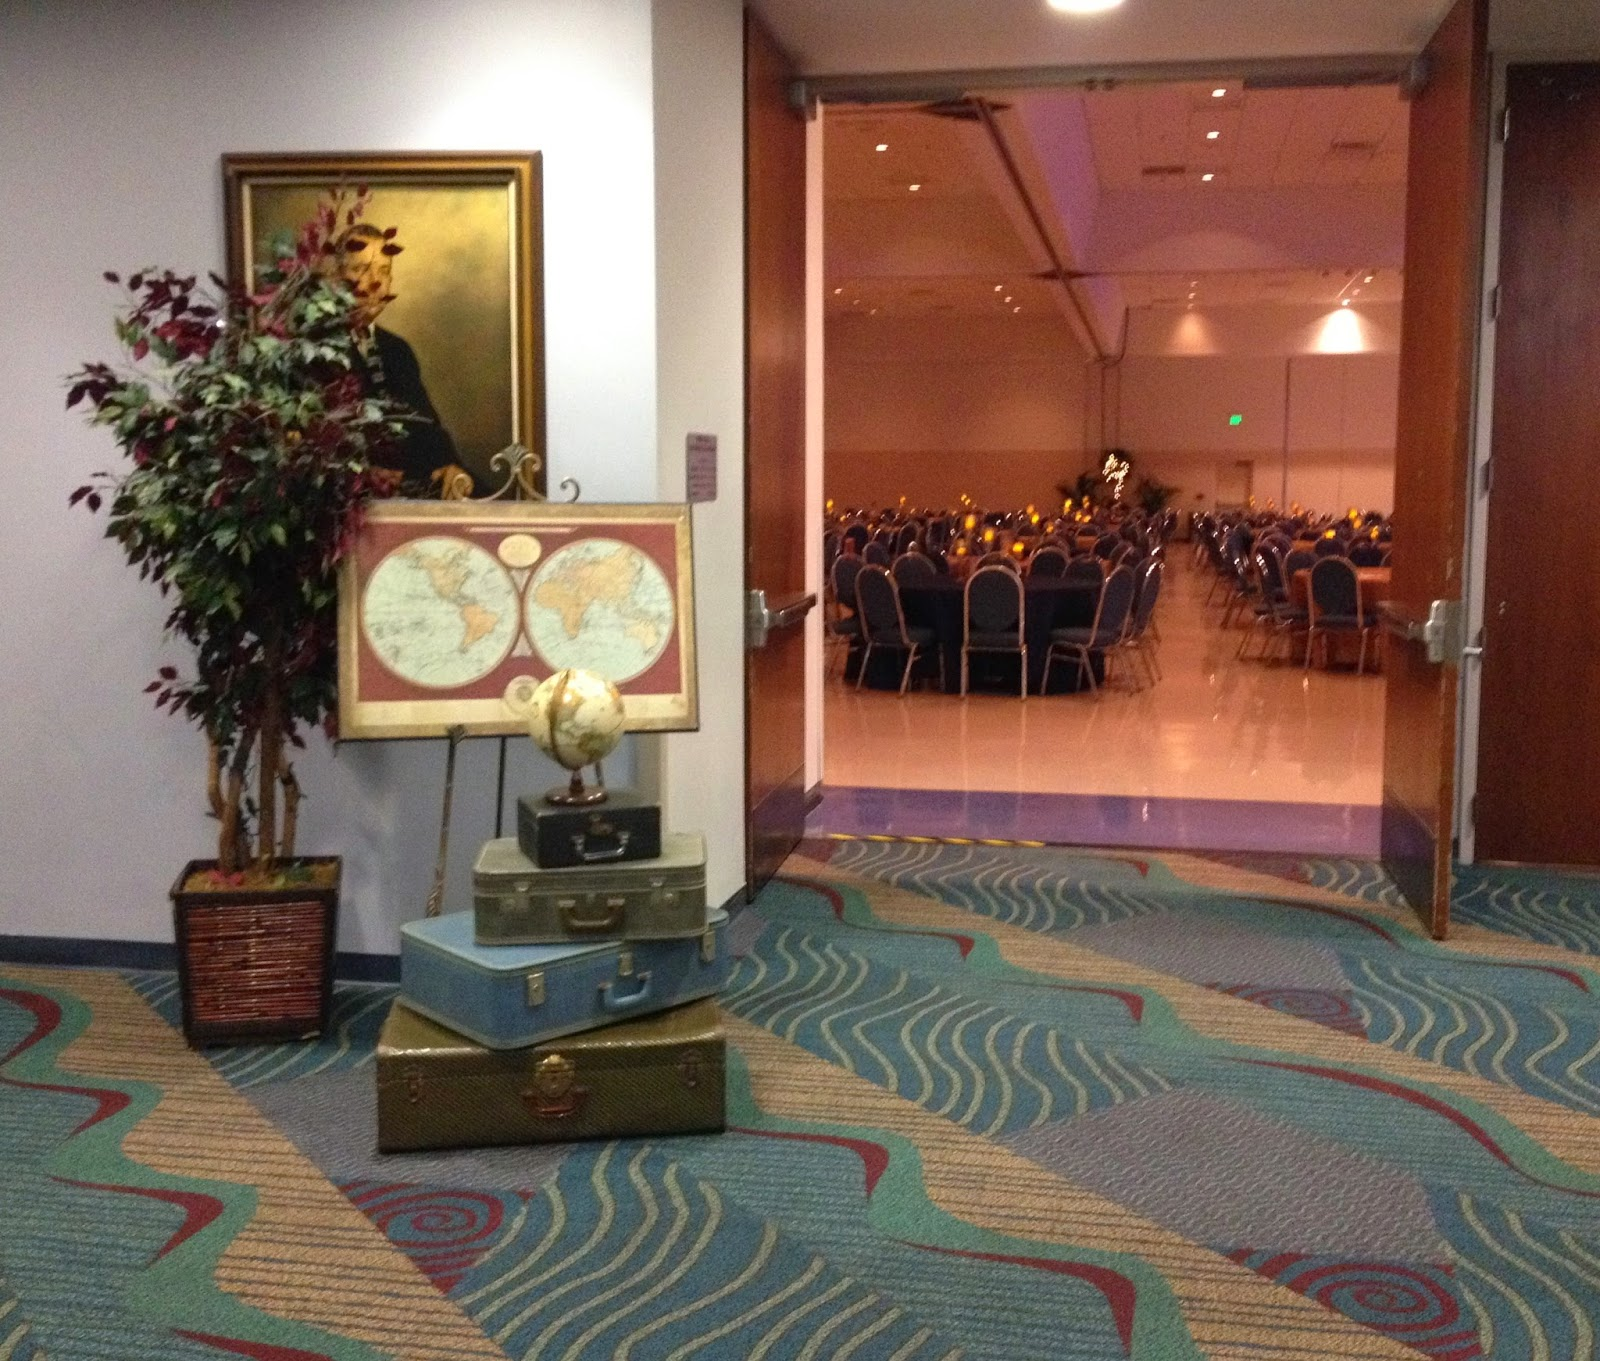 Party people event decorating company lakeland regional for Annual dinner decoration